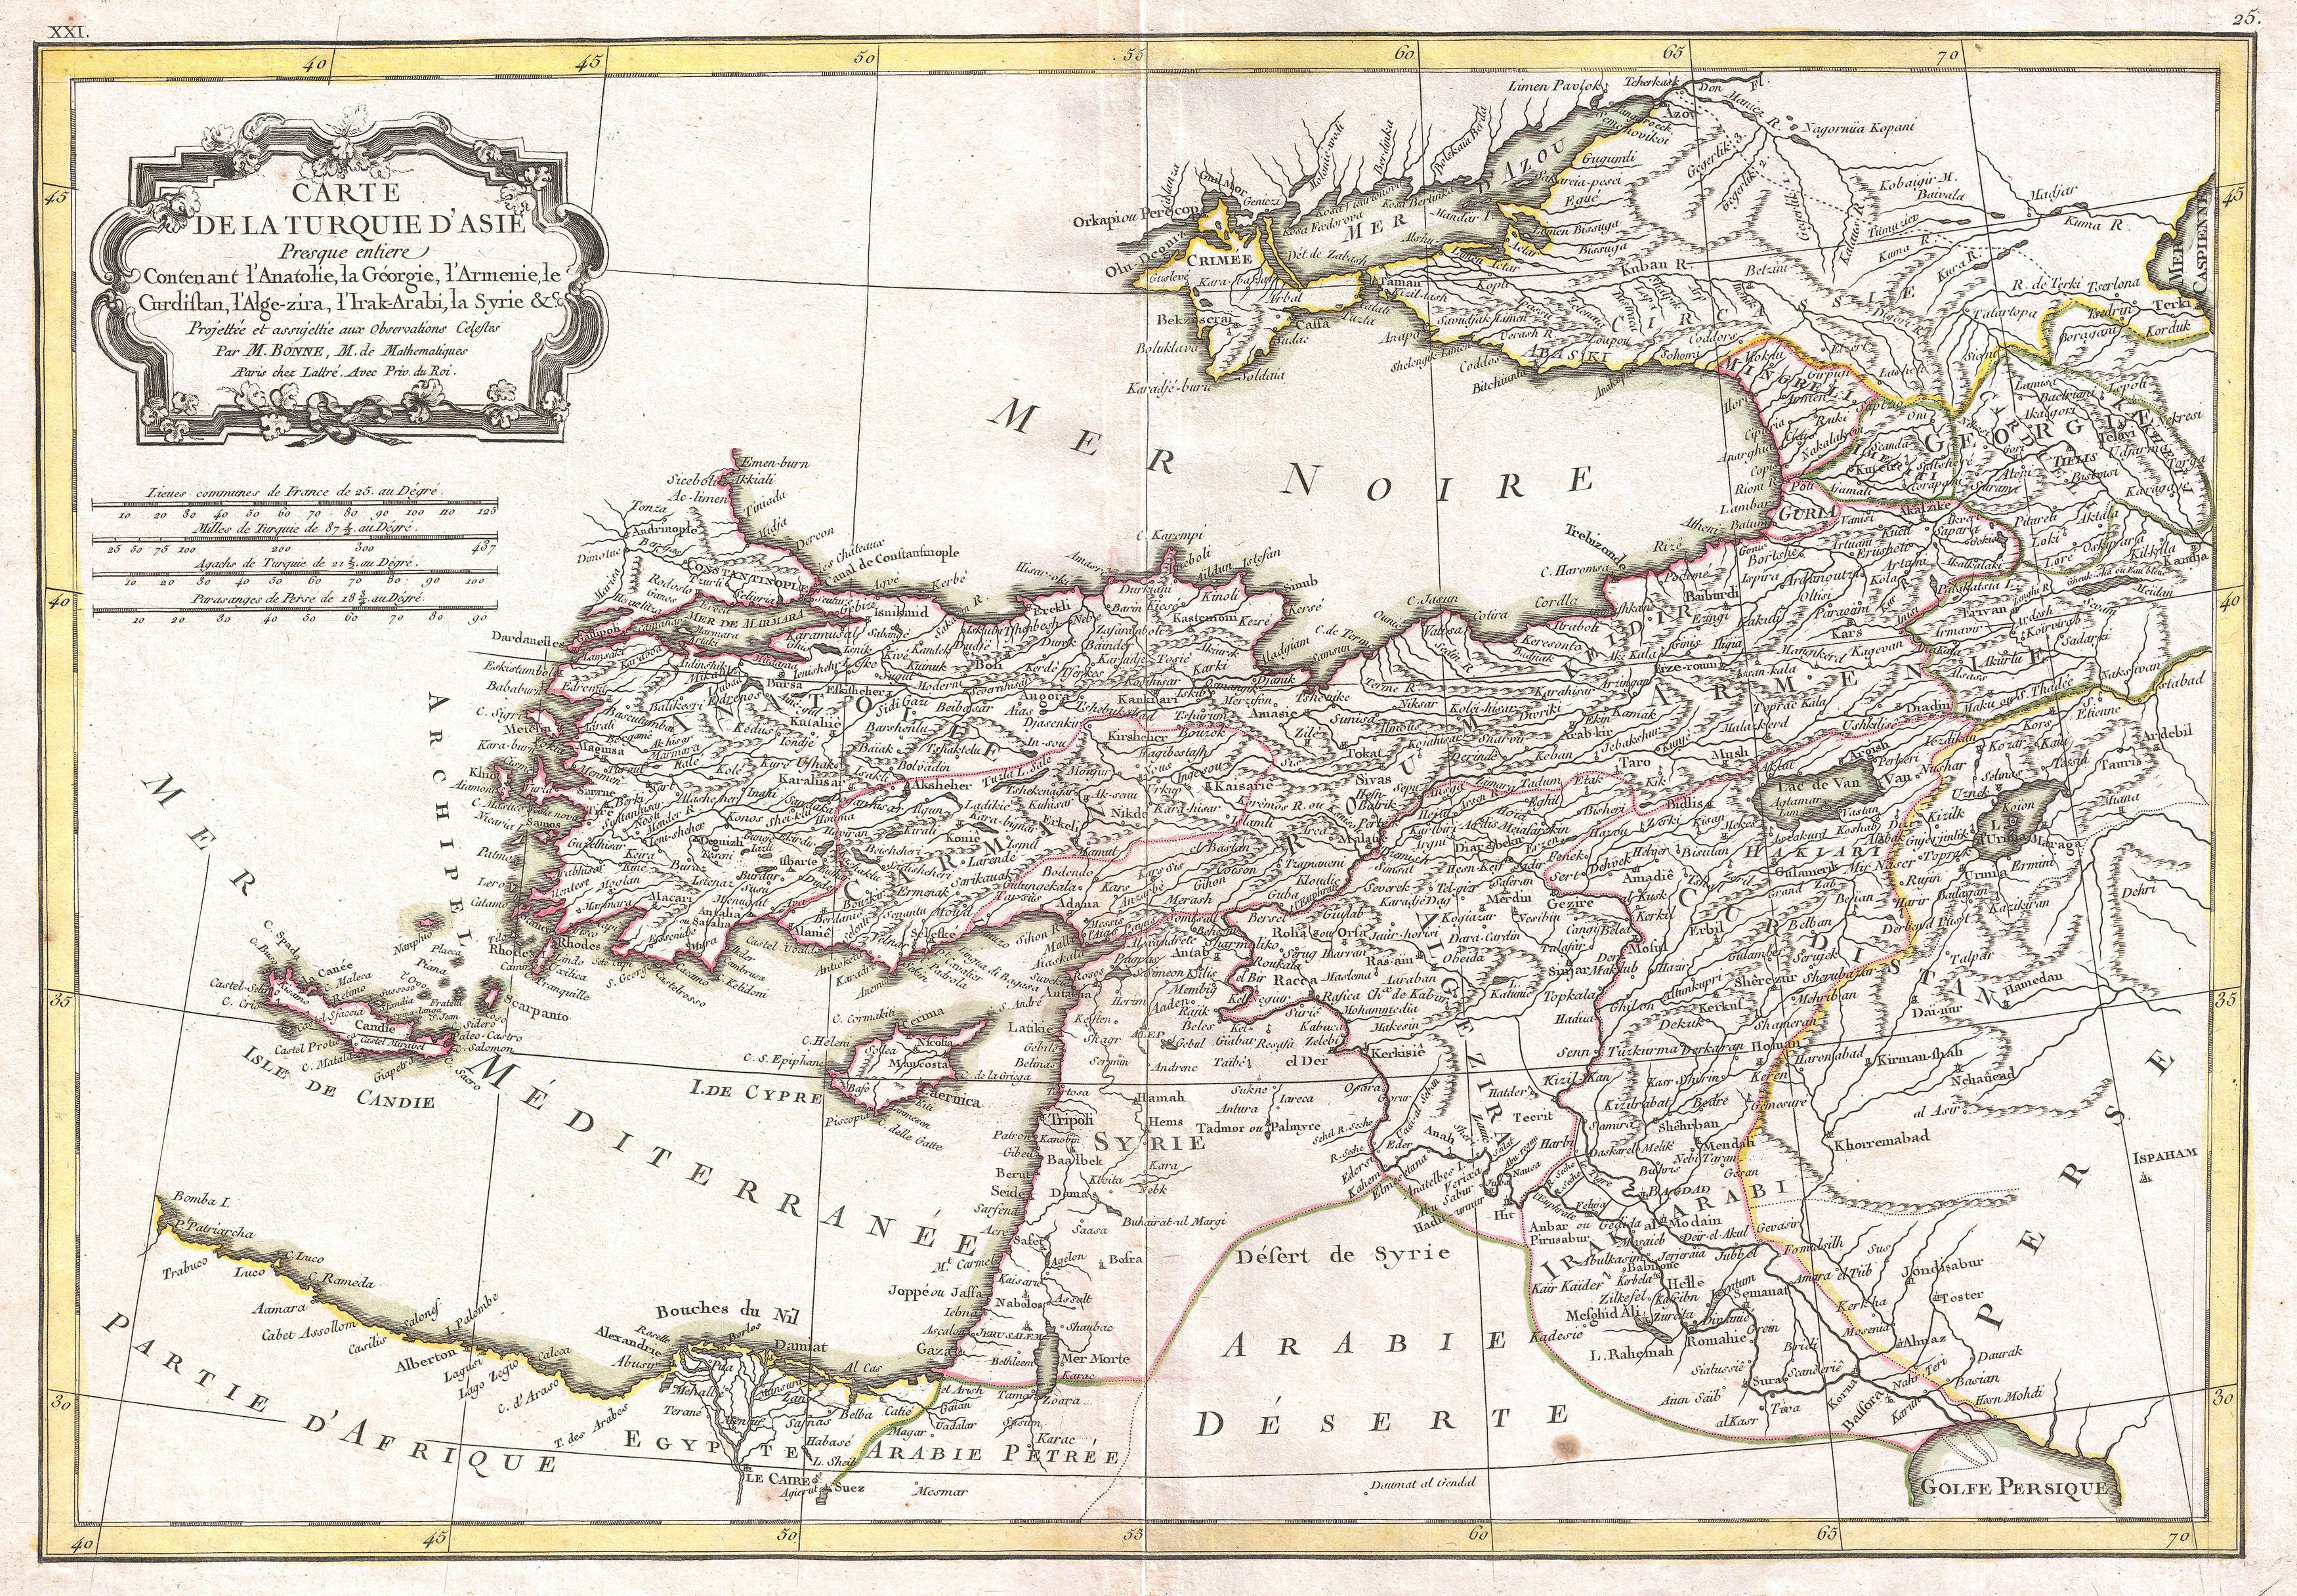 Old map of Turkey.